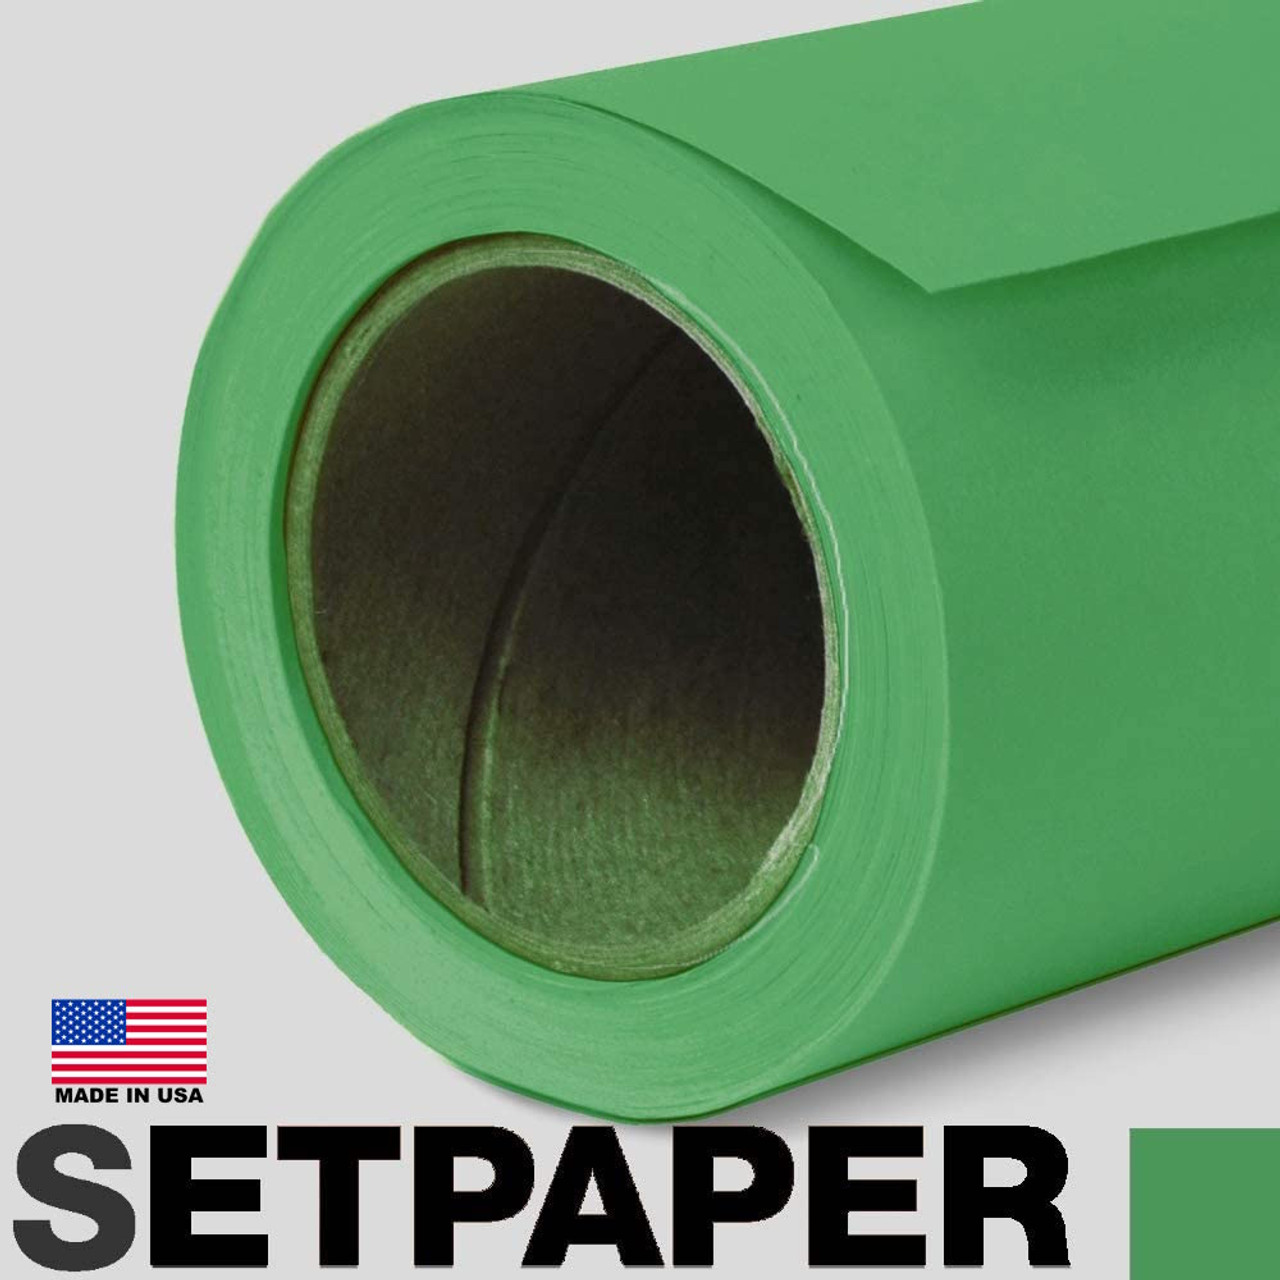 "6050 EXTRA WIDE SETPAPER - CHROMA GREEN 140"" x 50' (3.5 x 15.2m)"